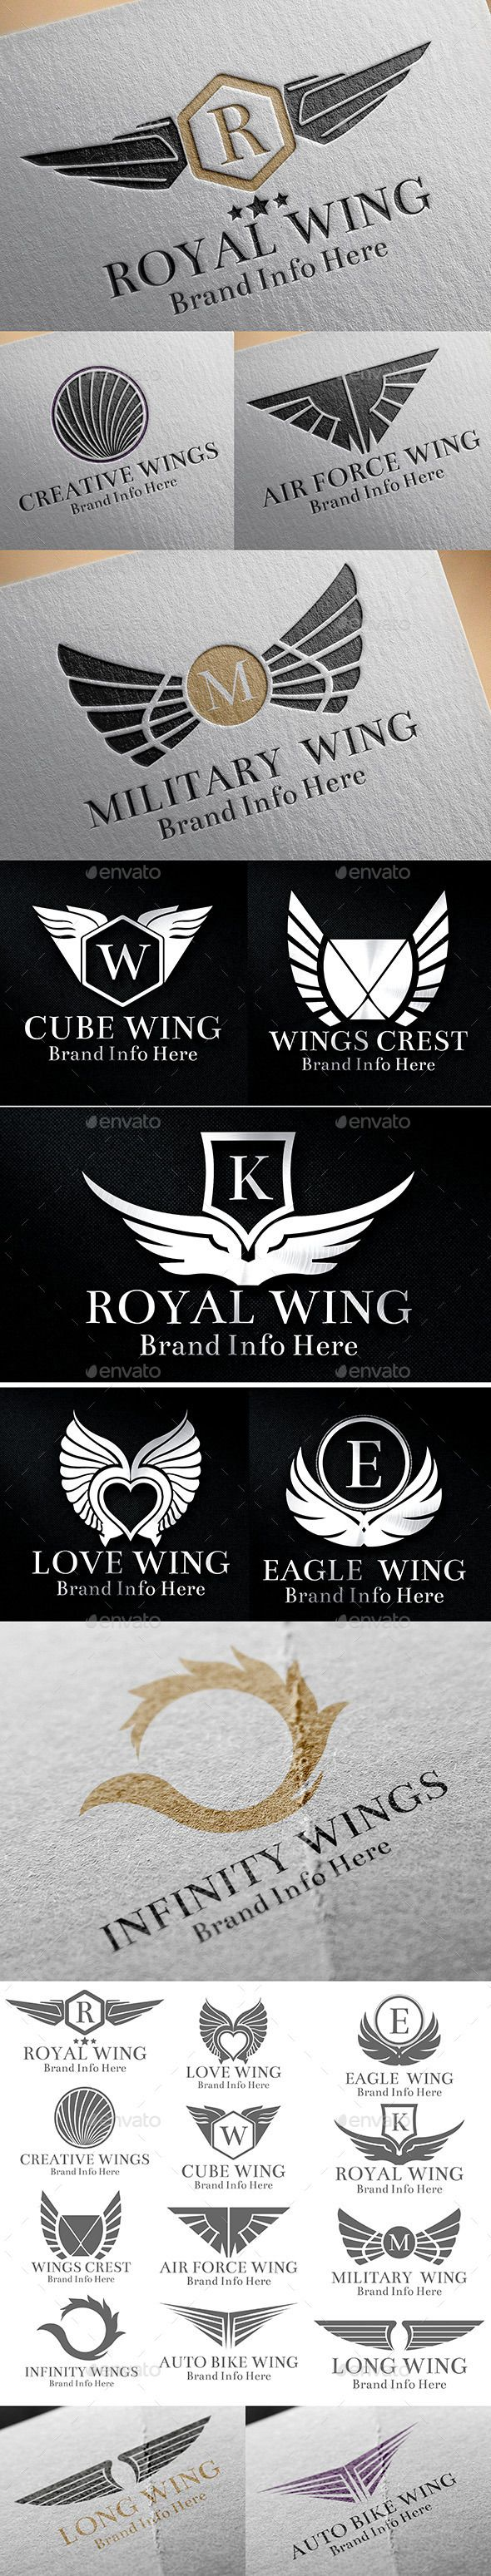 Heraldic Wings Logos - EPS Template • Only available here ➝ http://graphicriver.net/item/heraldic-wings-logos/12661869?ref=pxcr